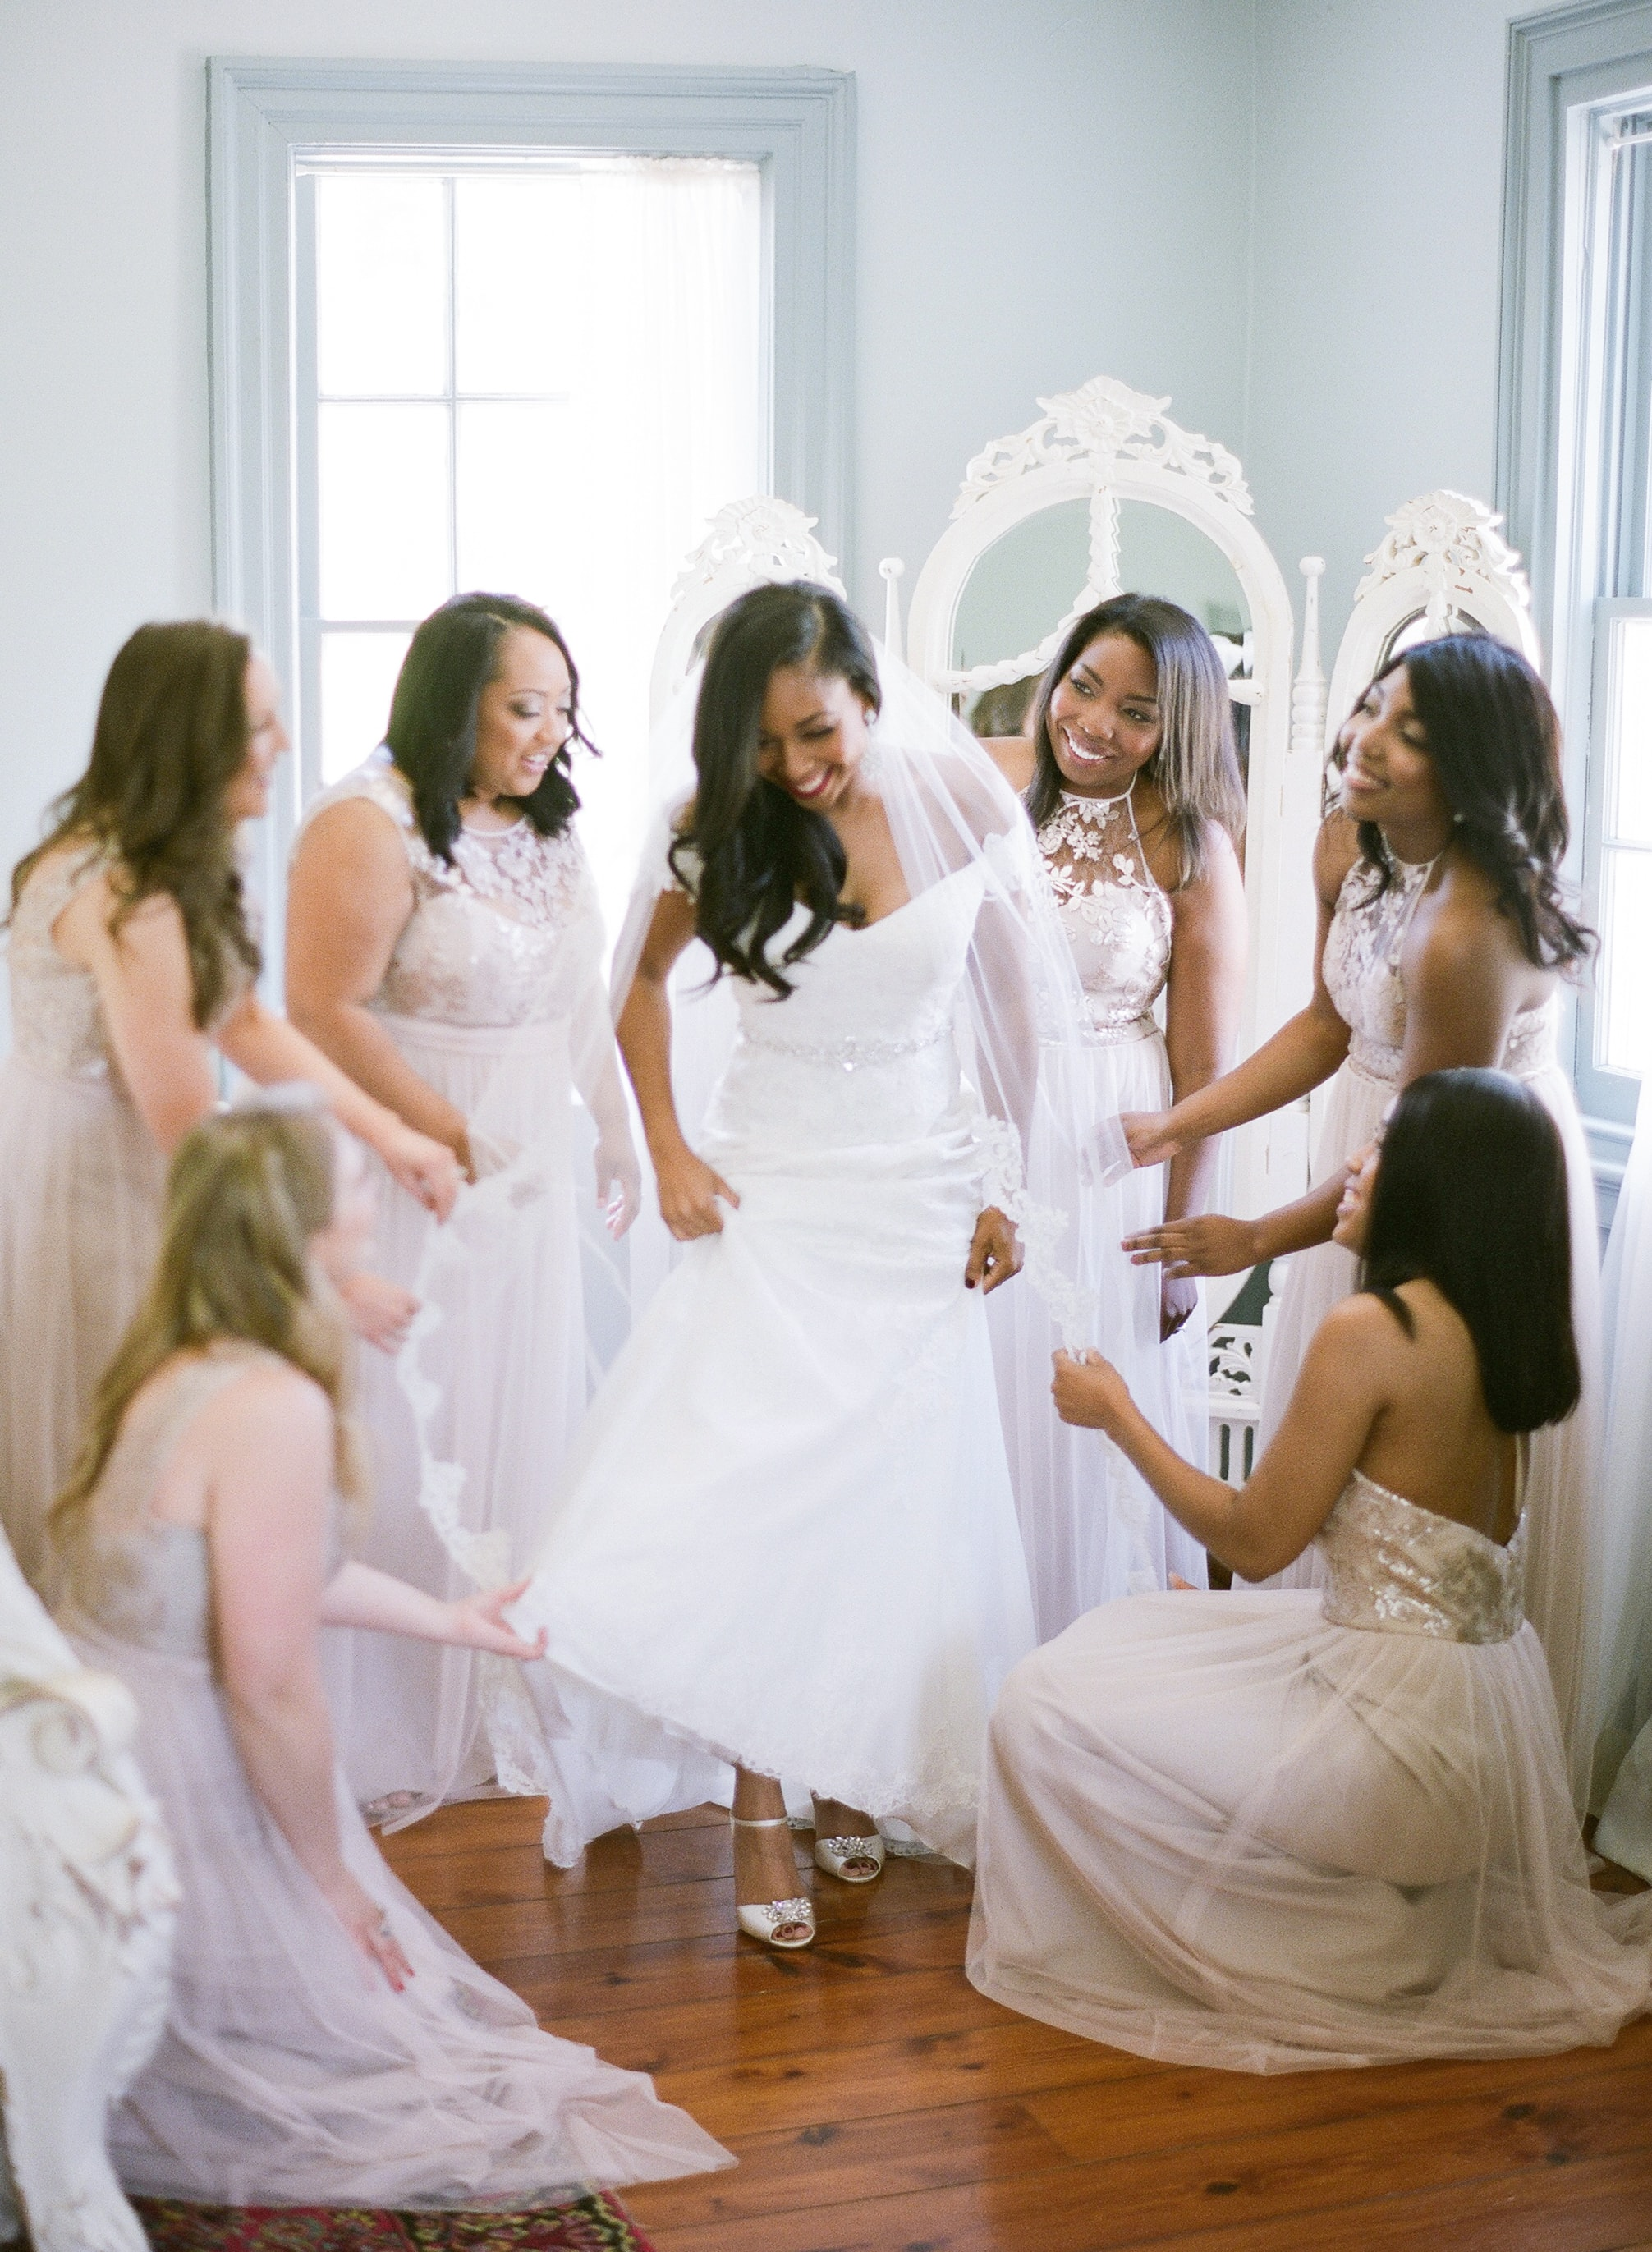 Bride prepares for wedding day with bridesmaids for a wedding at Vesuvius Vineyards